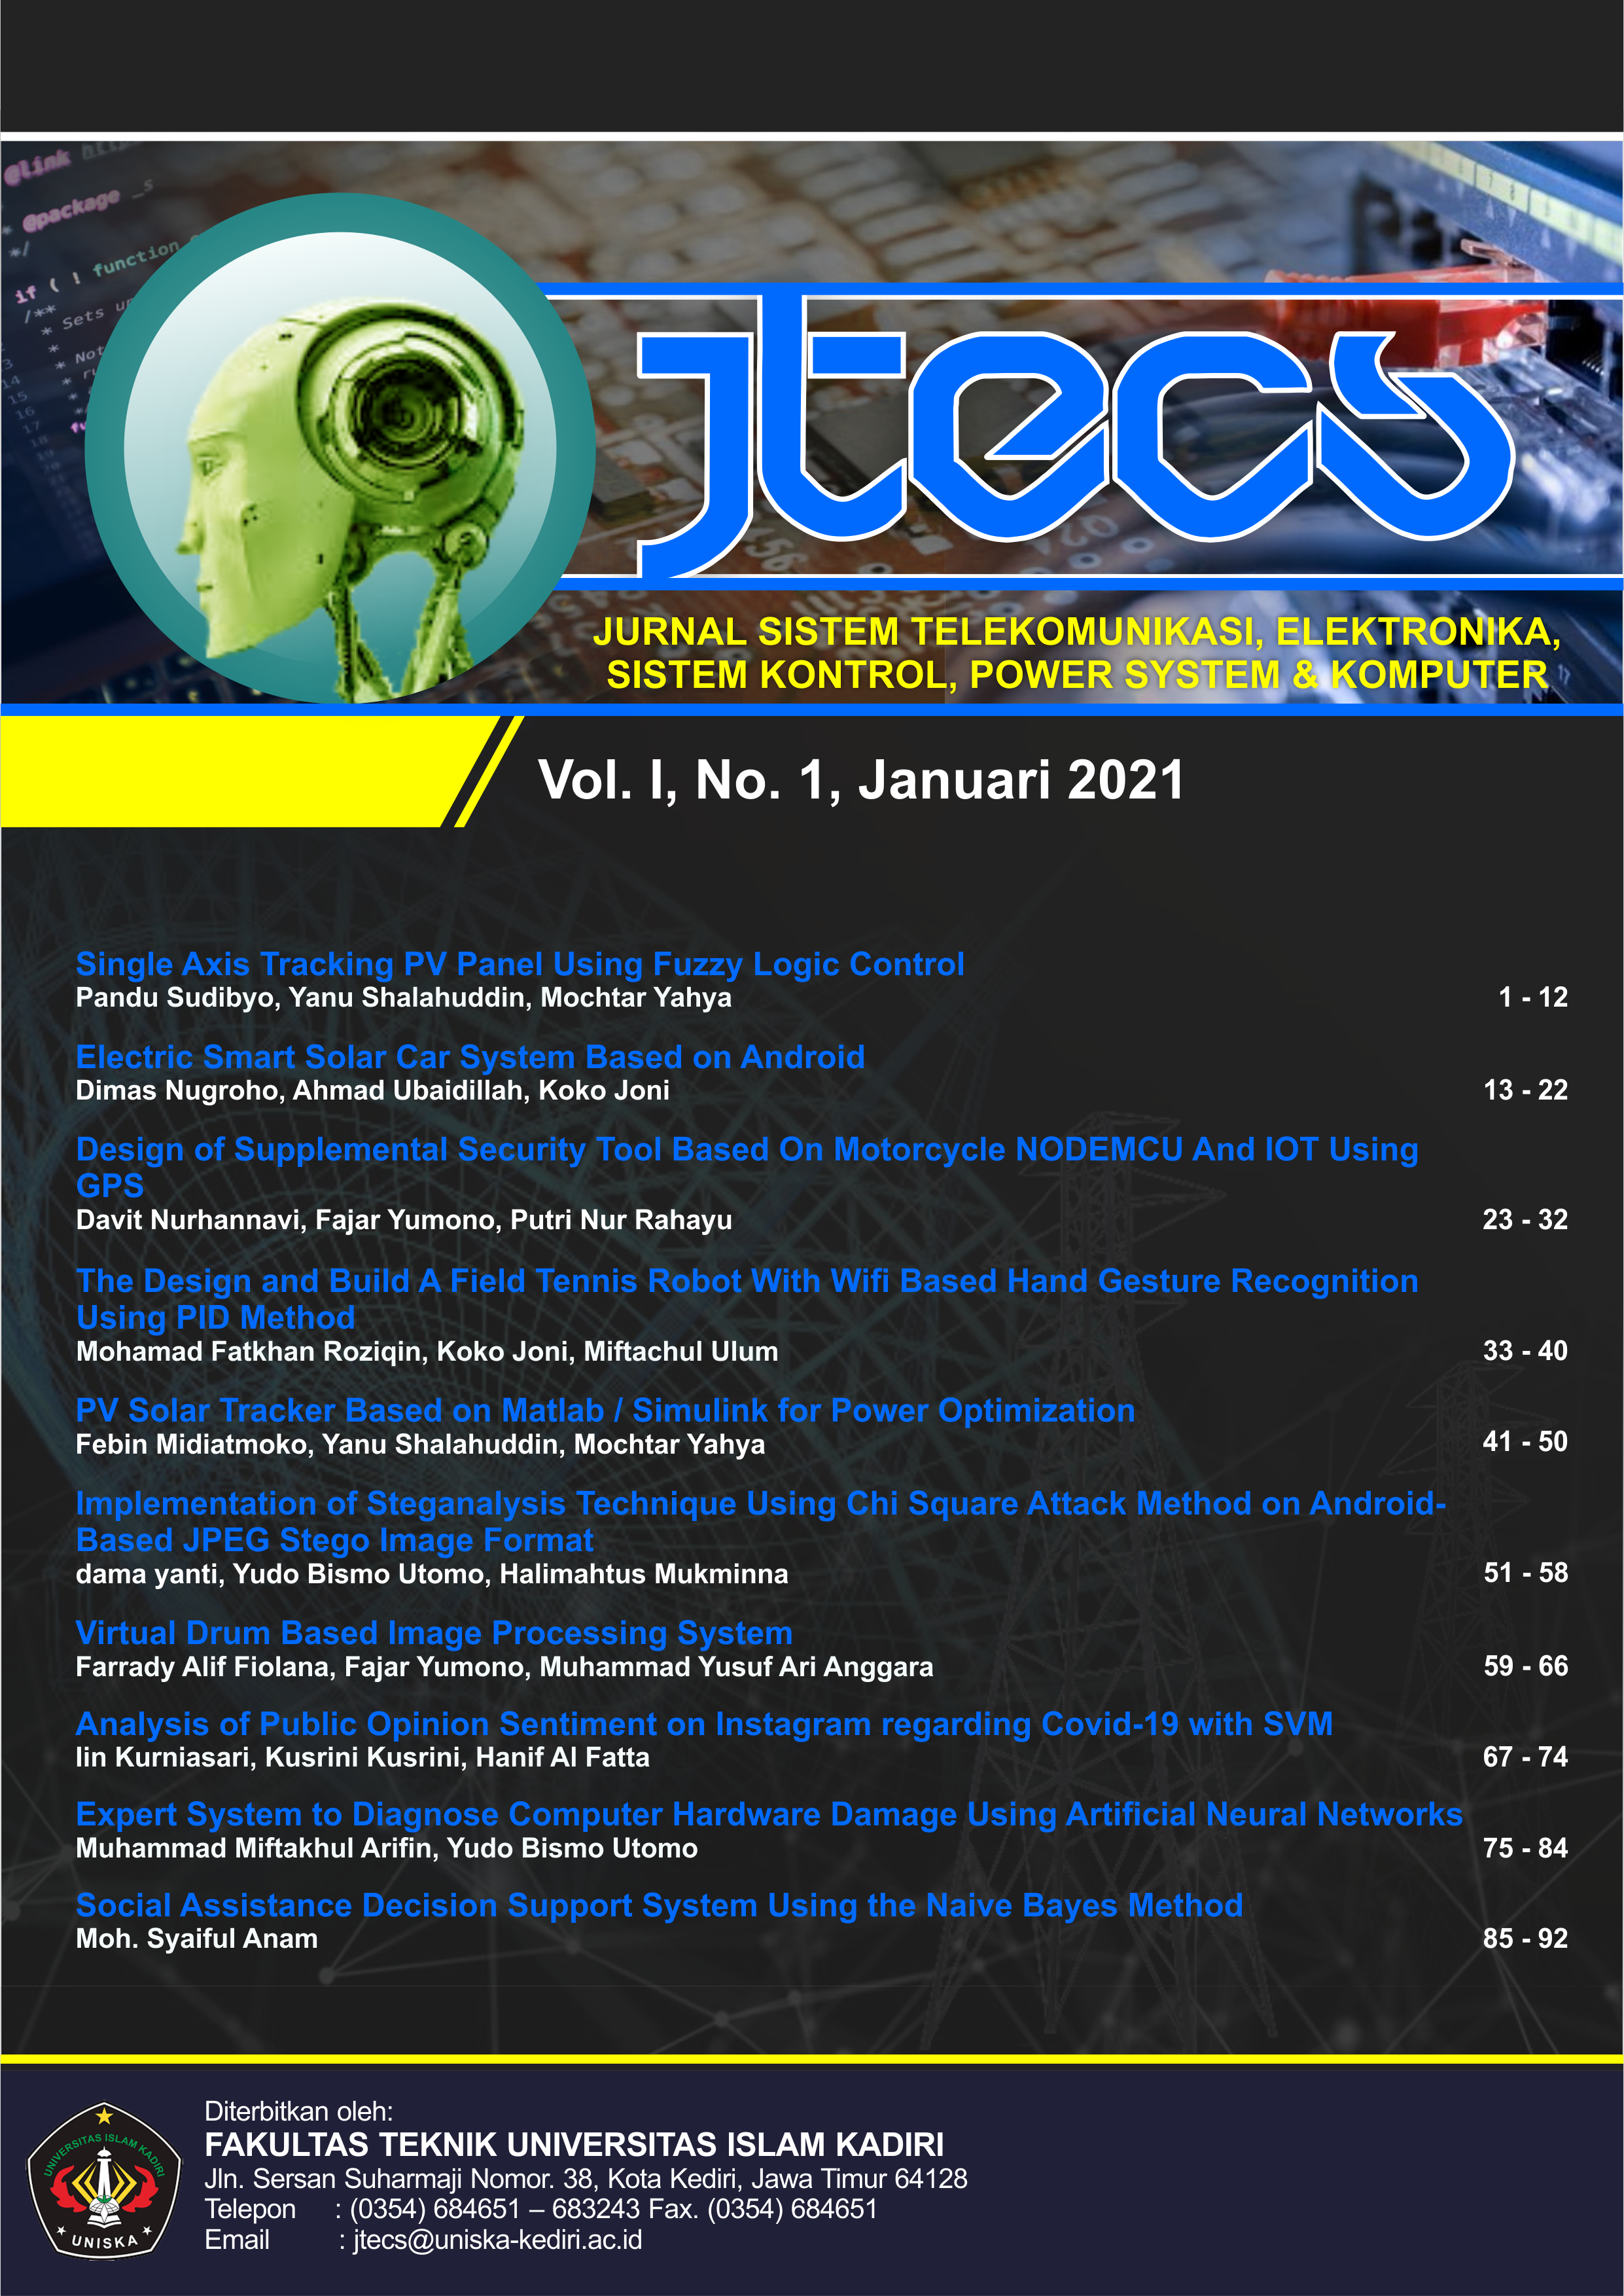 JTECS: Volume I, No 1, Januari 2021